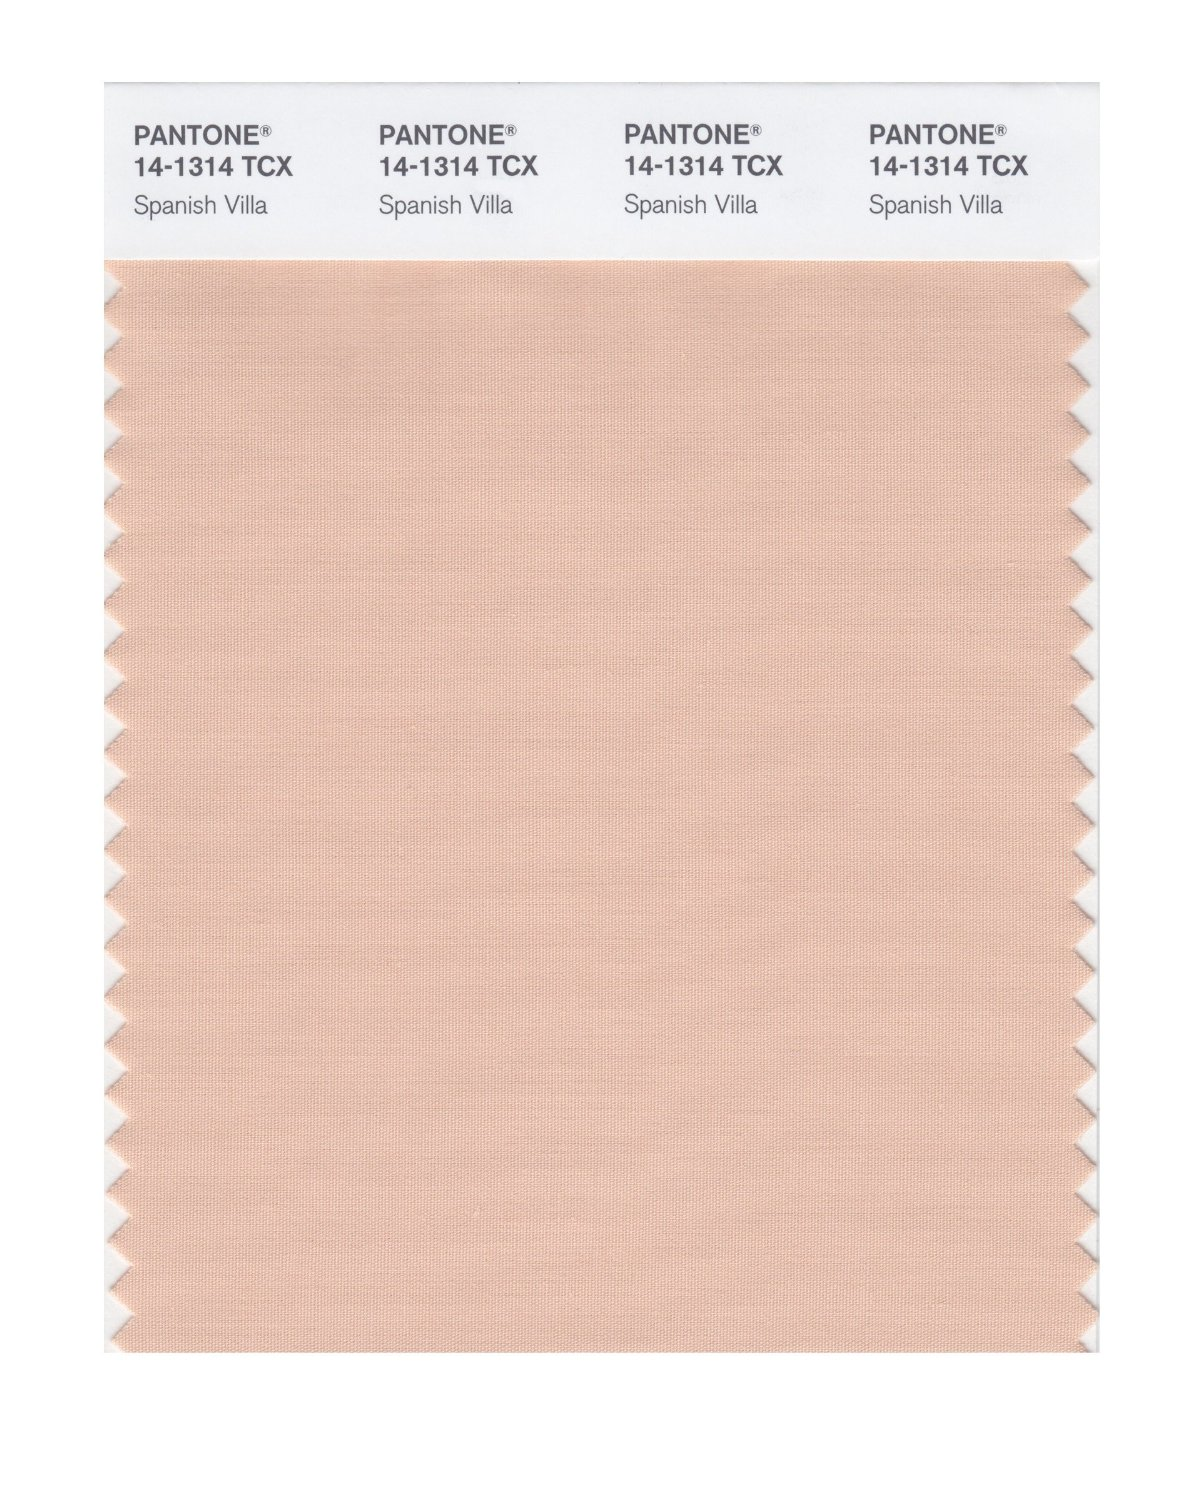 Pantone Smart Swatch 14-1314 Spanish Villa